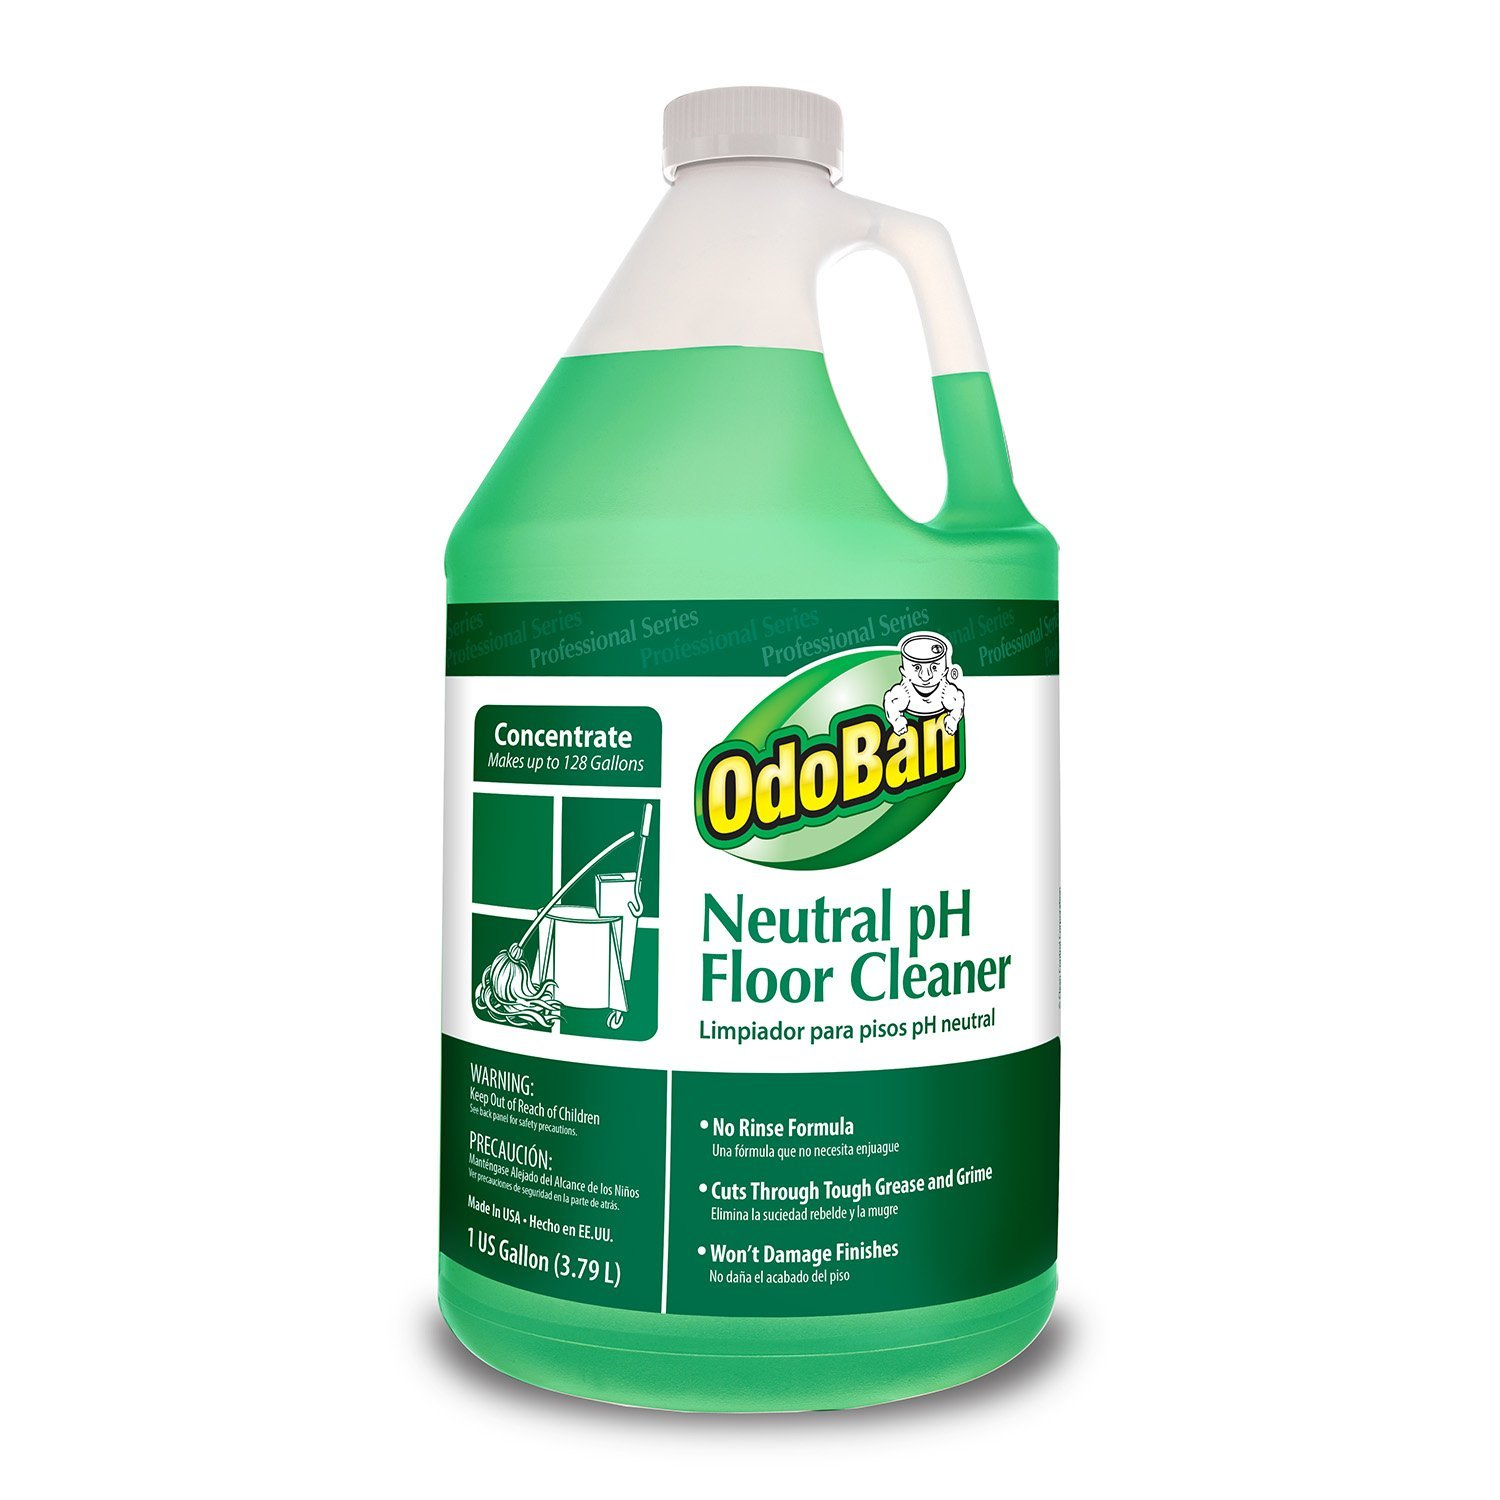 OdoBan Professional Series No Rinse Neutral pH Floor Cleaner Concentrate, 128.15 Fl Oz, Pack of 4